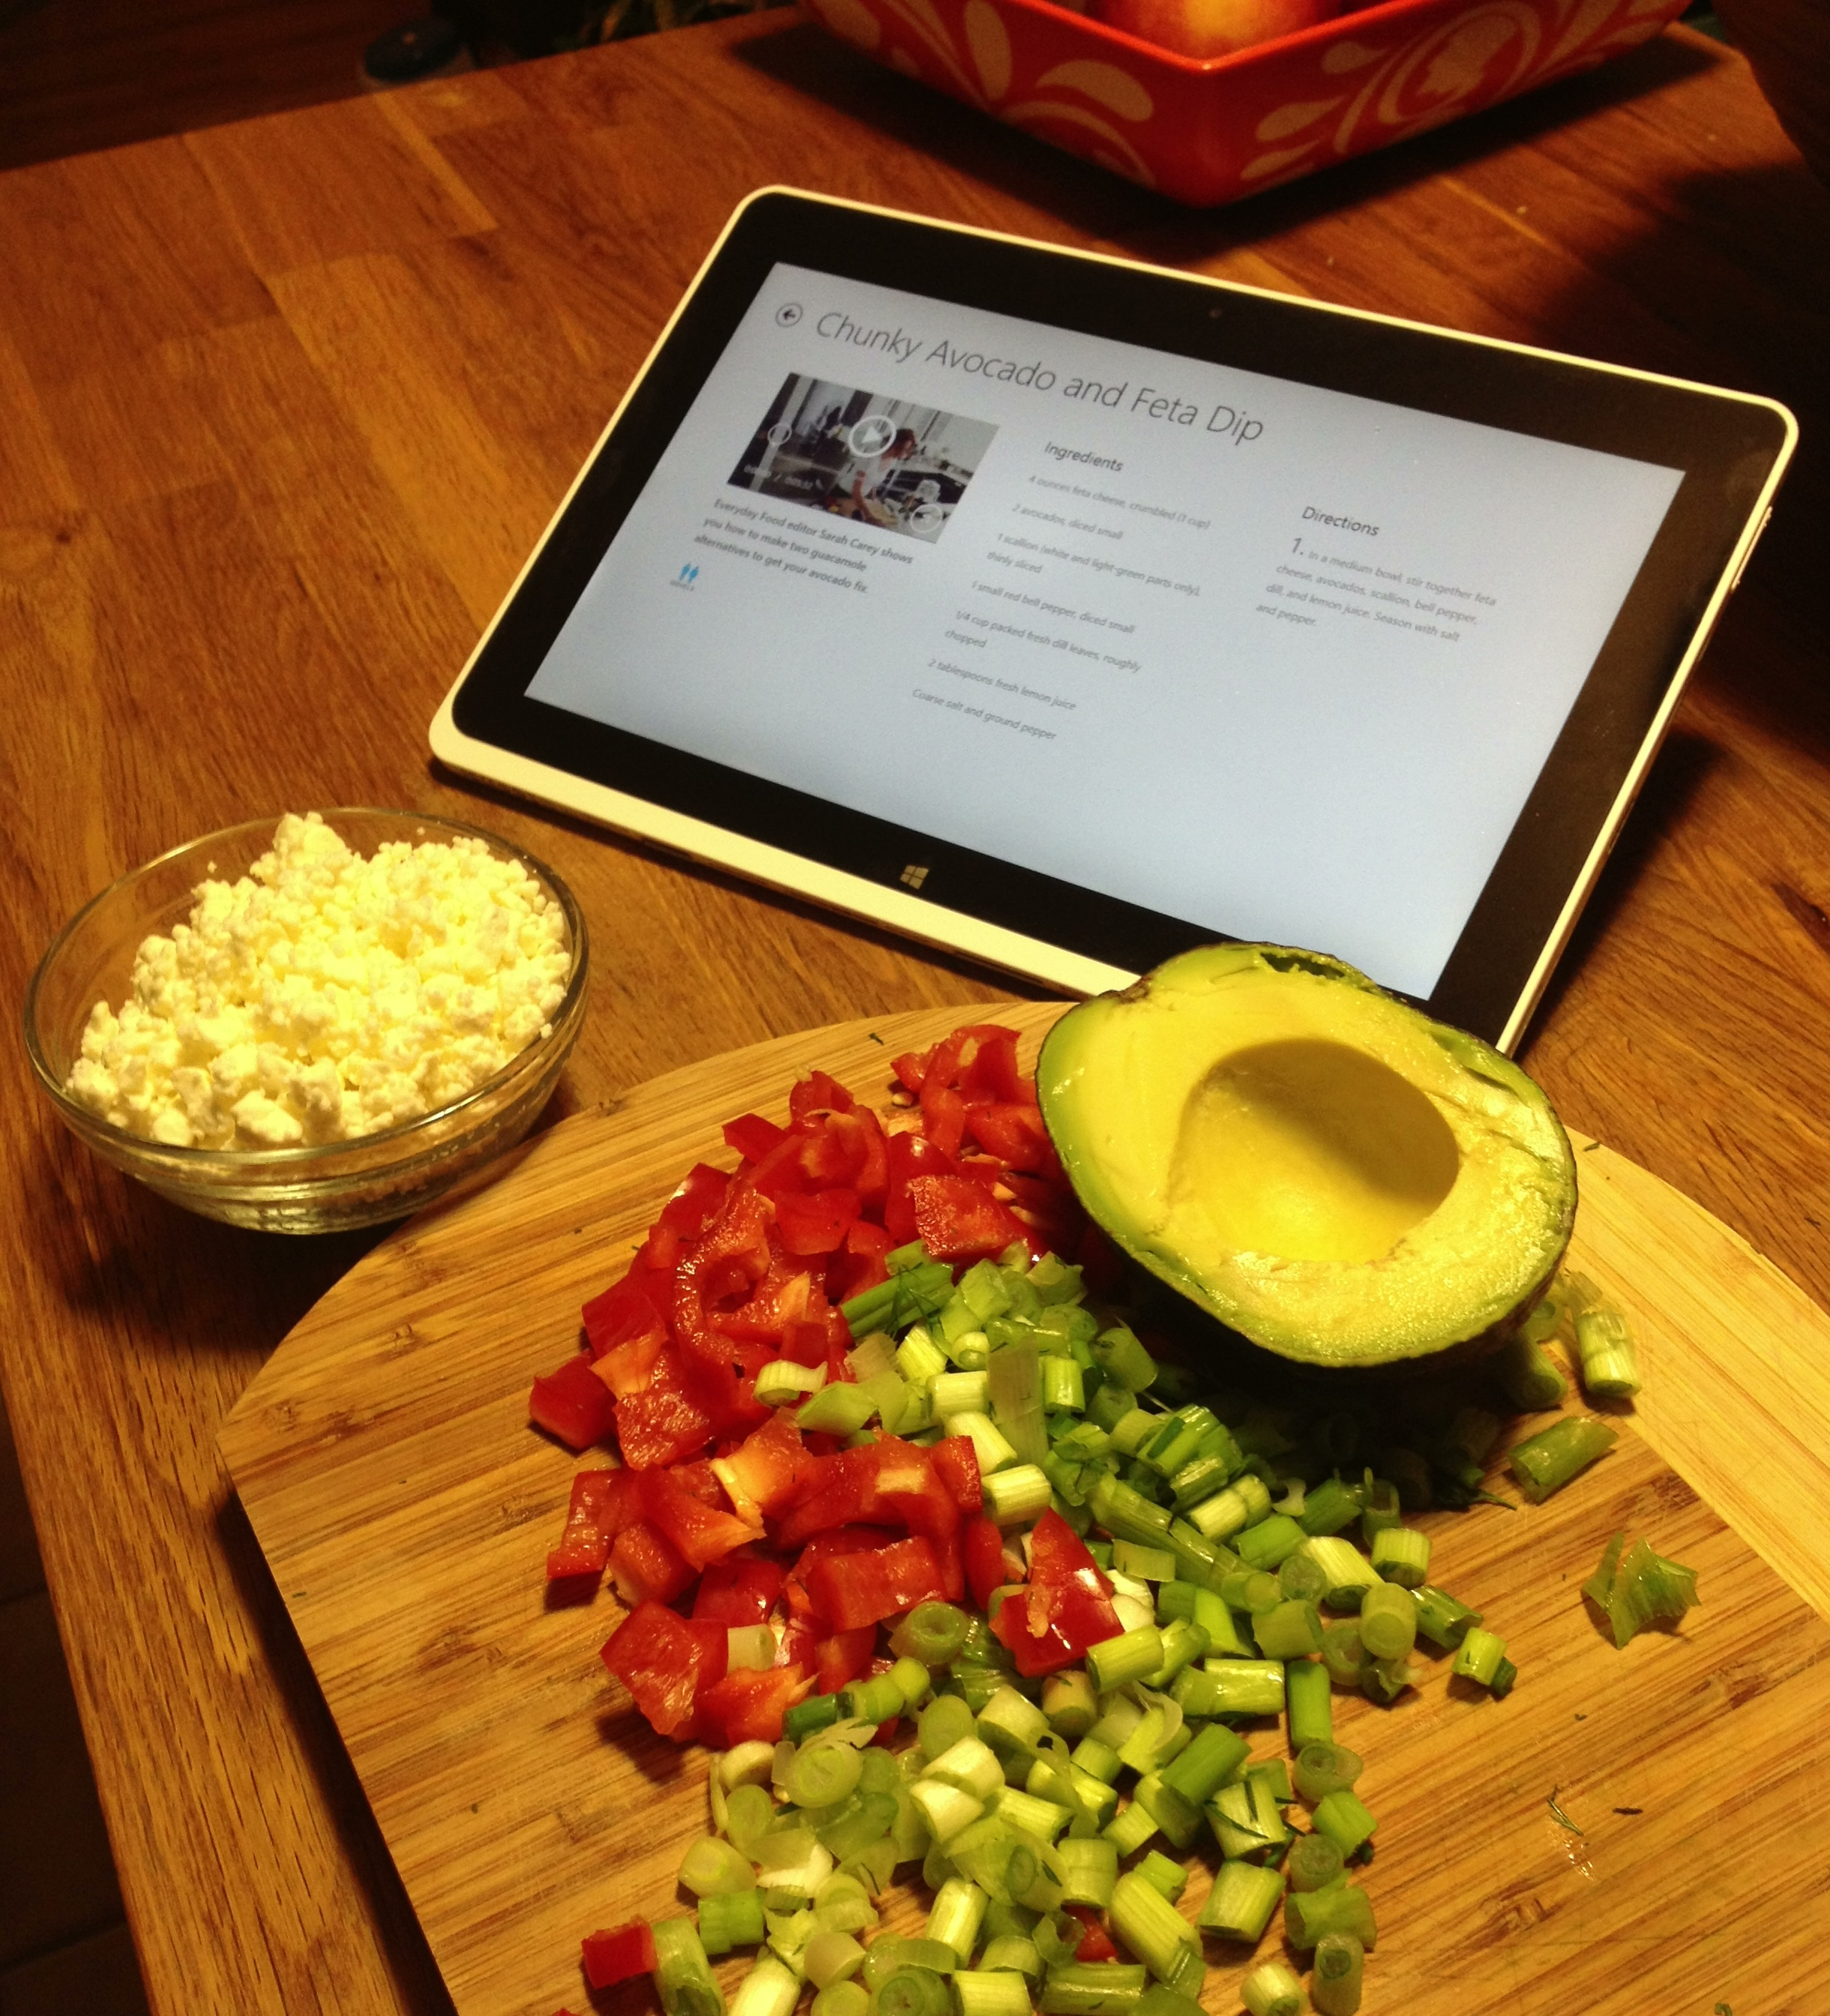 The Chunky Avocado and Feta dip for Super Bowl Sunday with Acer w5 Tablet.